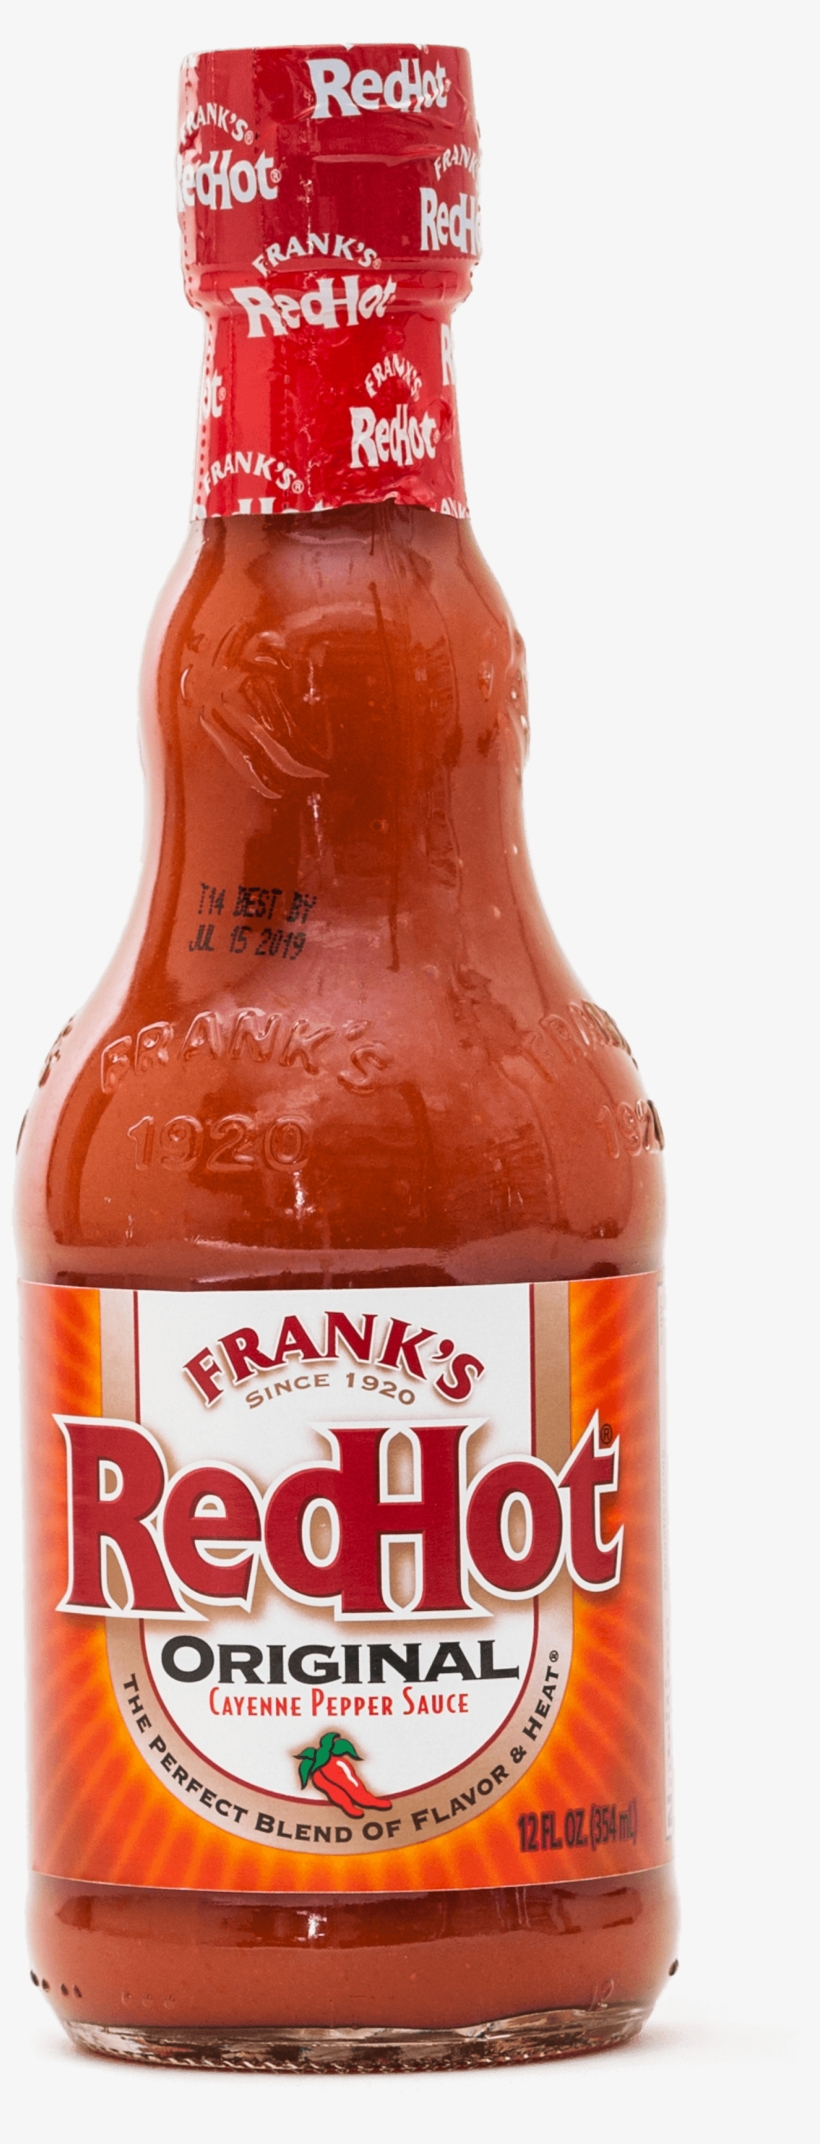 Organic Heinz Ketchup Bottle Png - Franks Hot Sauce Uk, transparent png #1053355